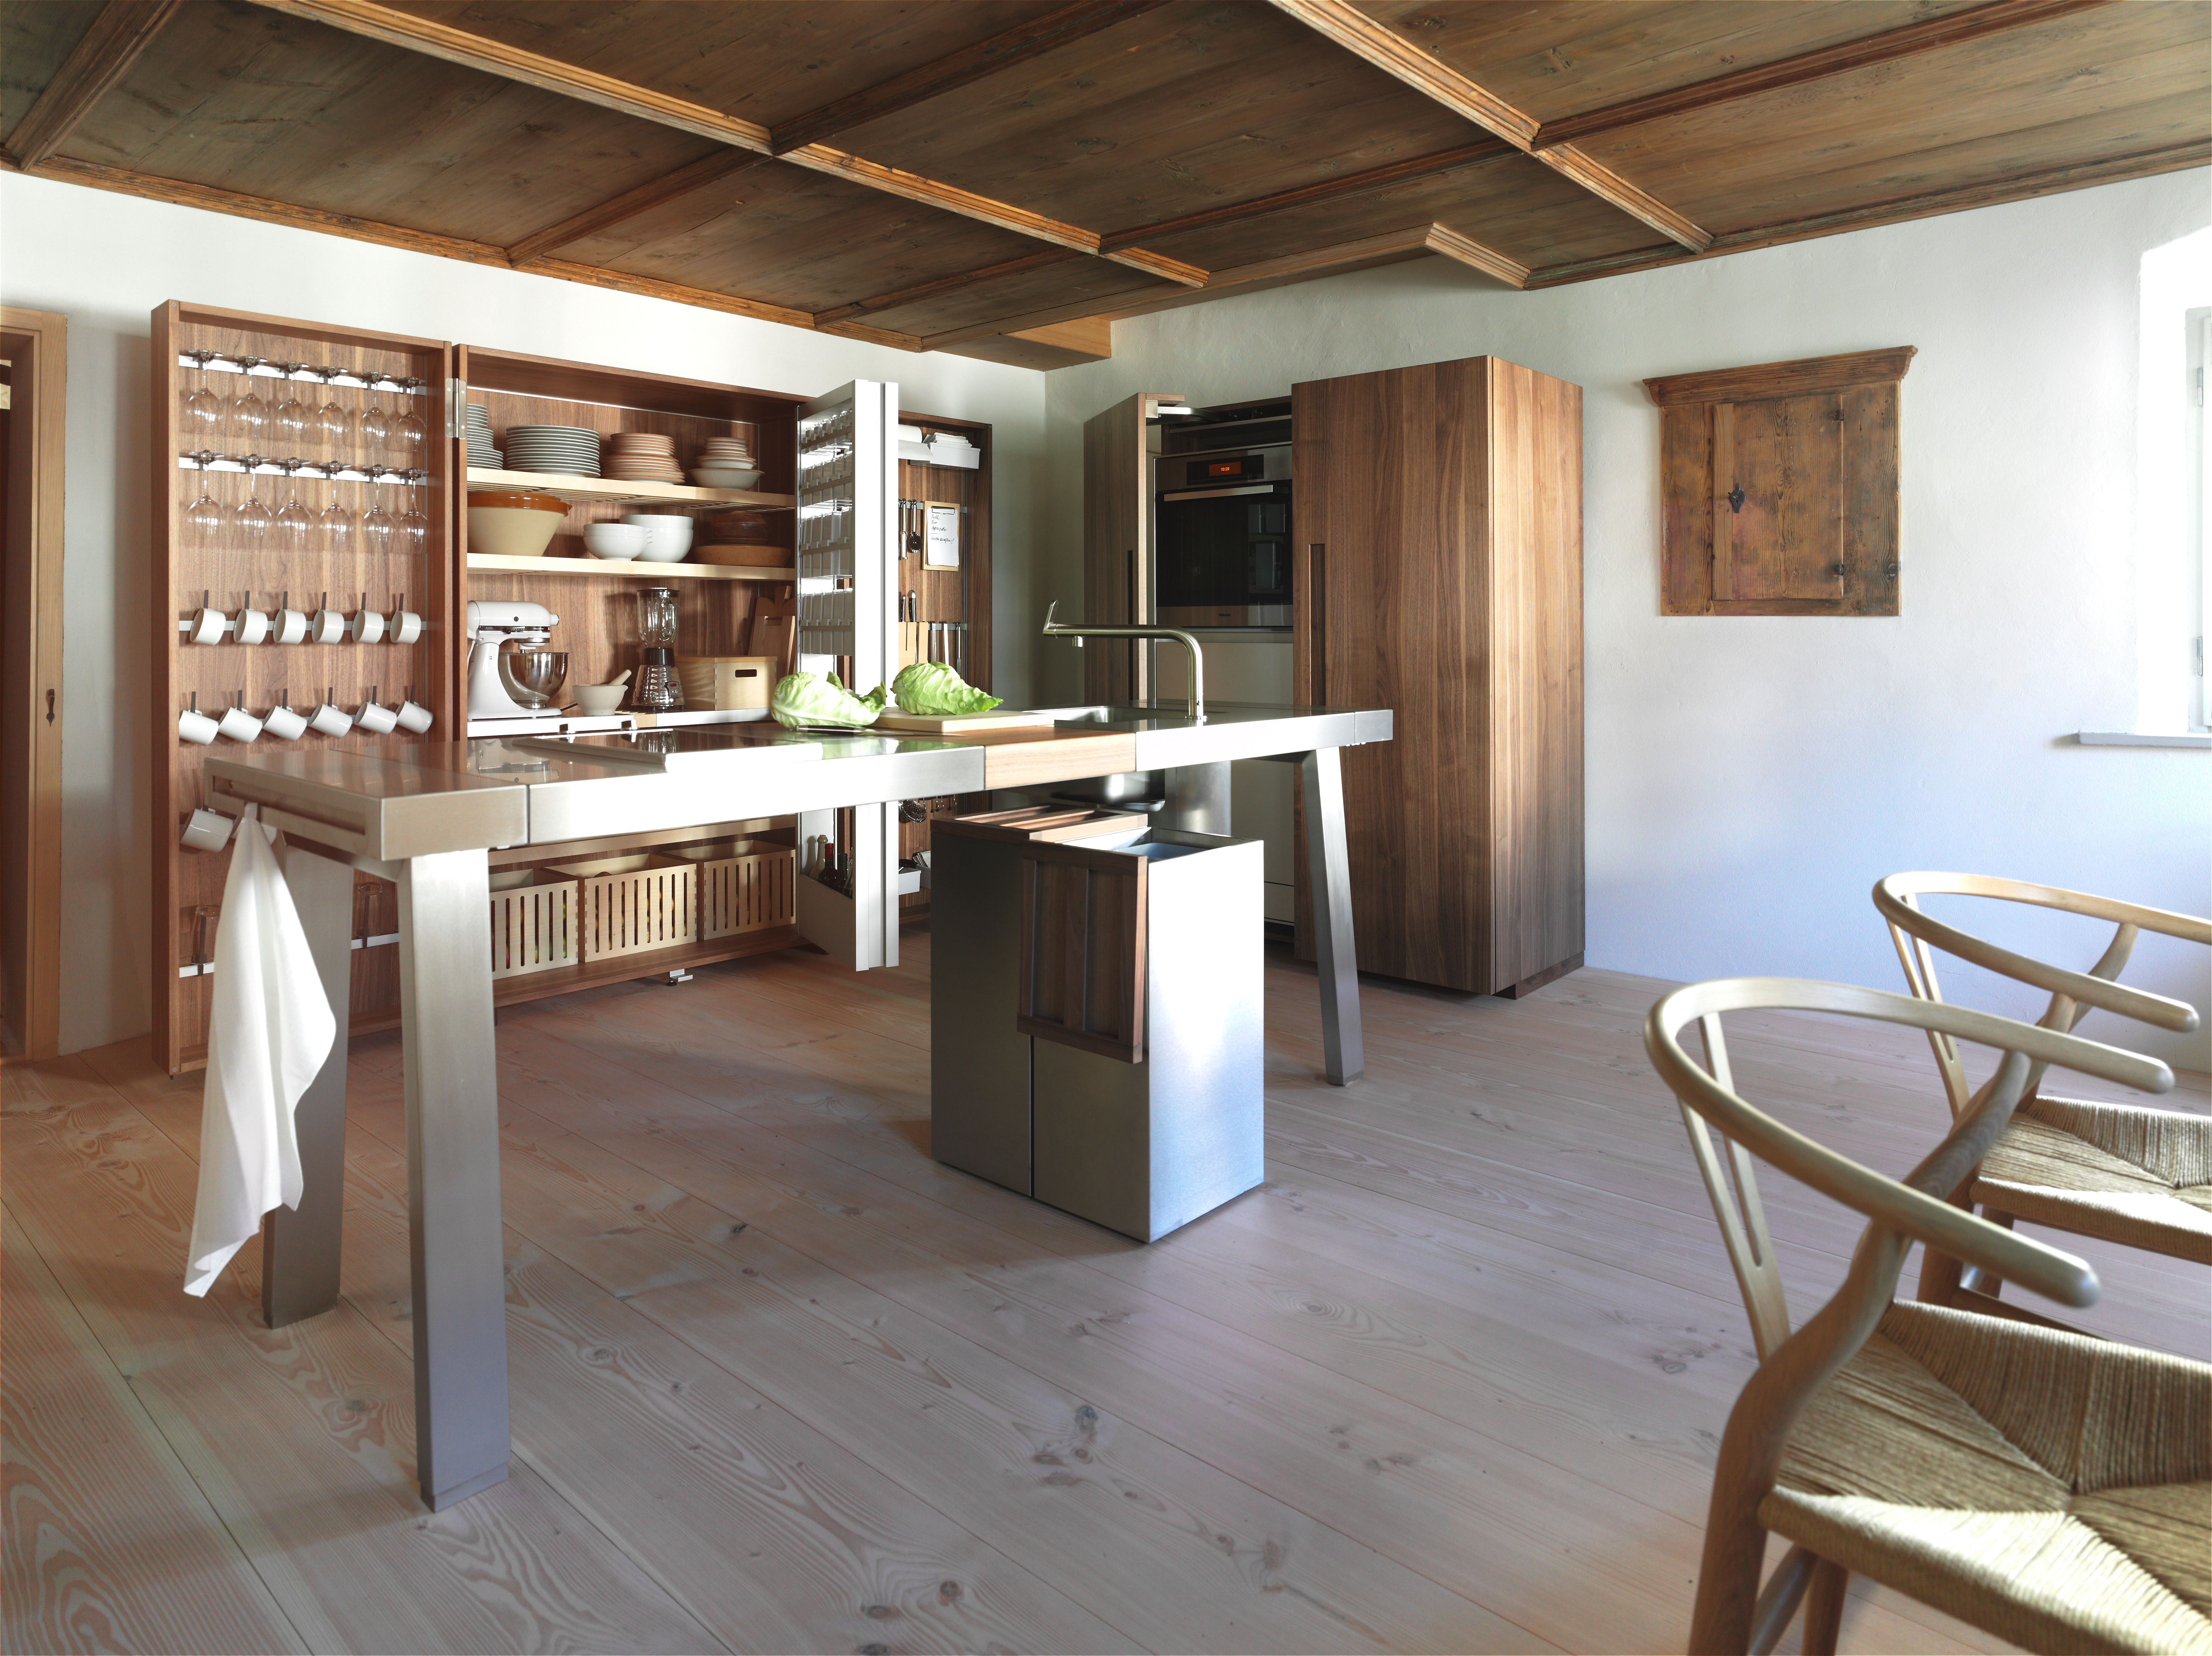 bulthaup makes organization look so beautiful | cooking space ...